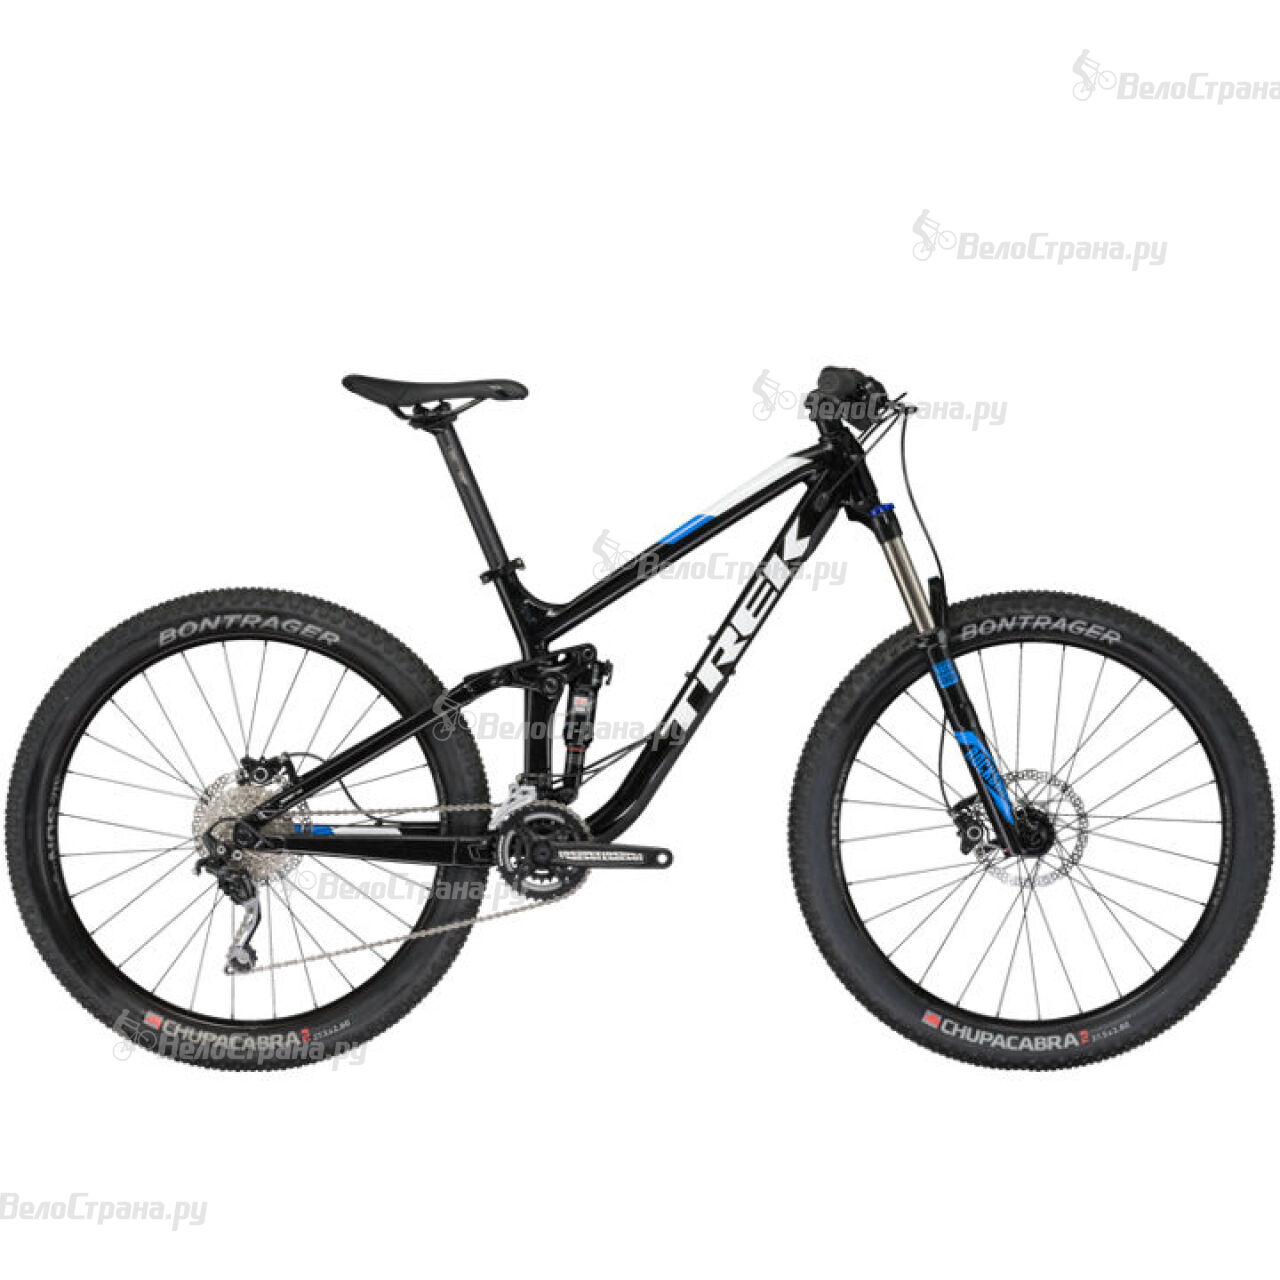 Велосипед Trek Fuel EX 5 27.5 PLUS (2017)